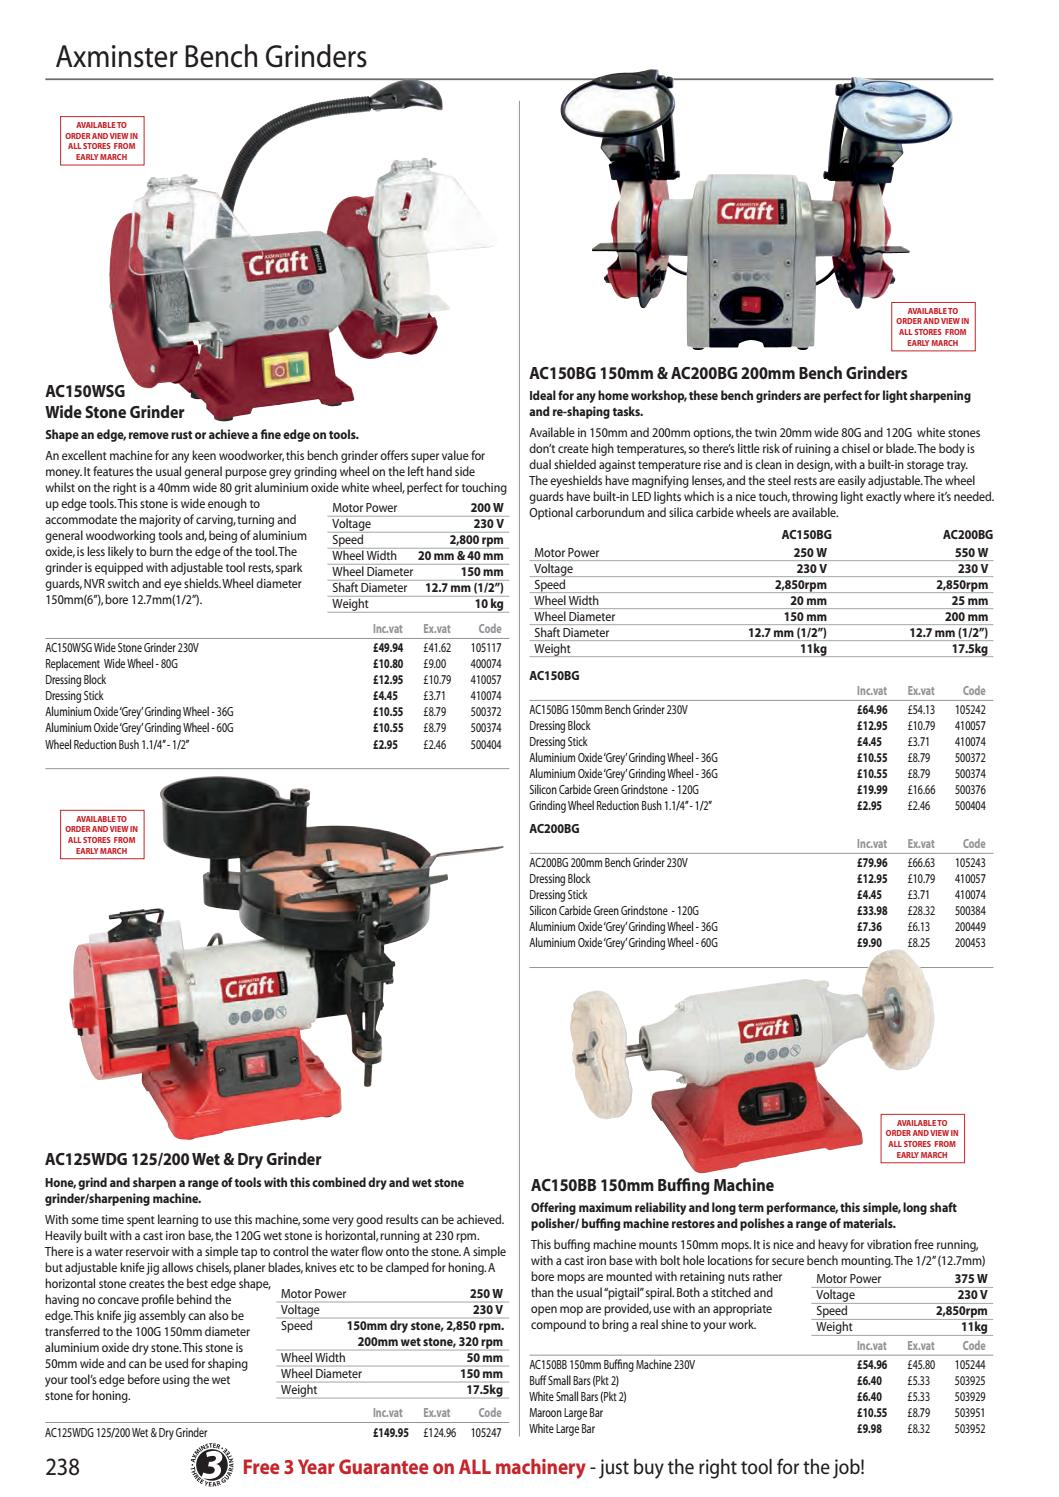 Miraculous Axminster Tools Machinery Catalogue 2018 19 By Axminster Alphanode Cool Chair Designs And Ideas Alphanodeonline